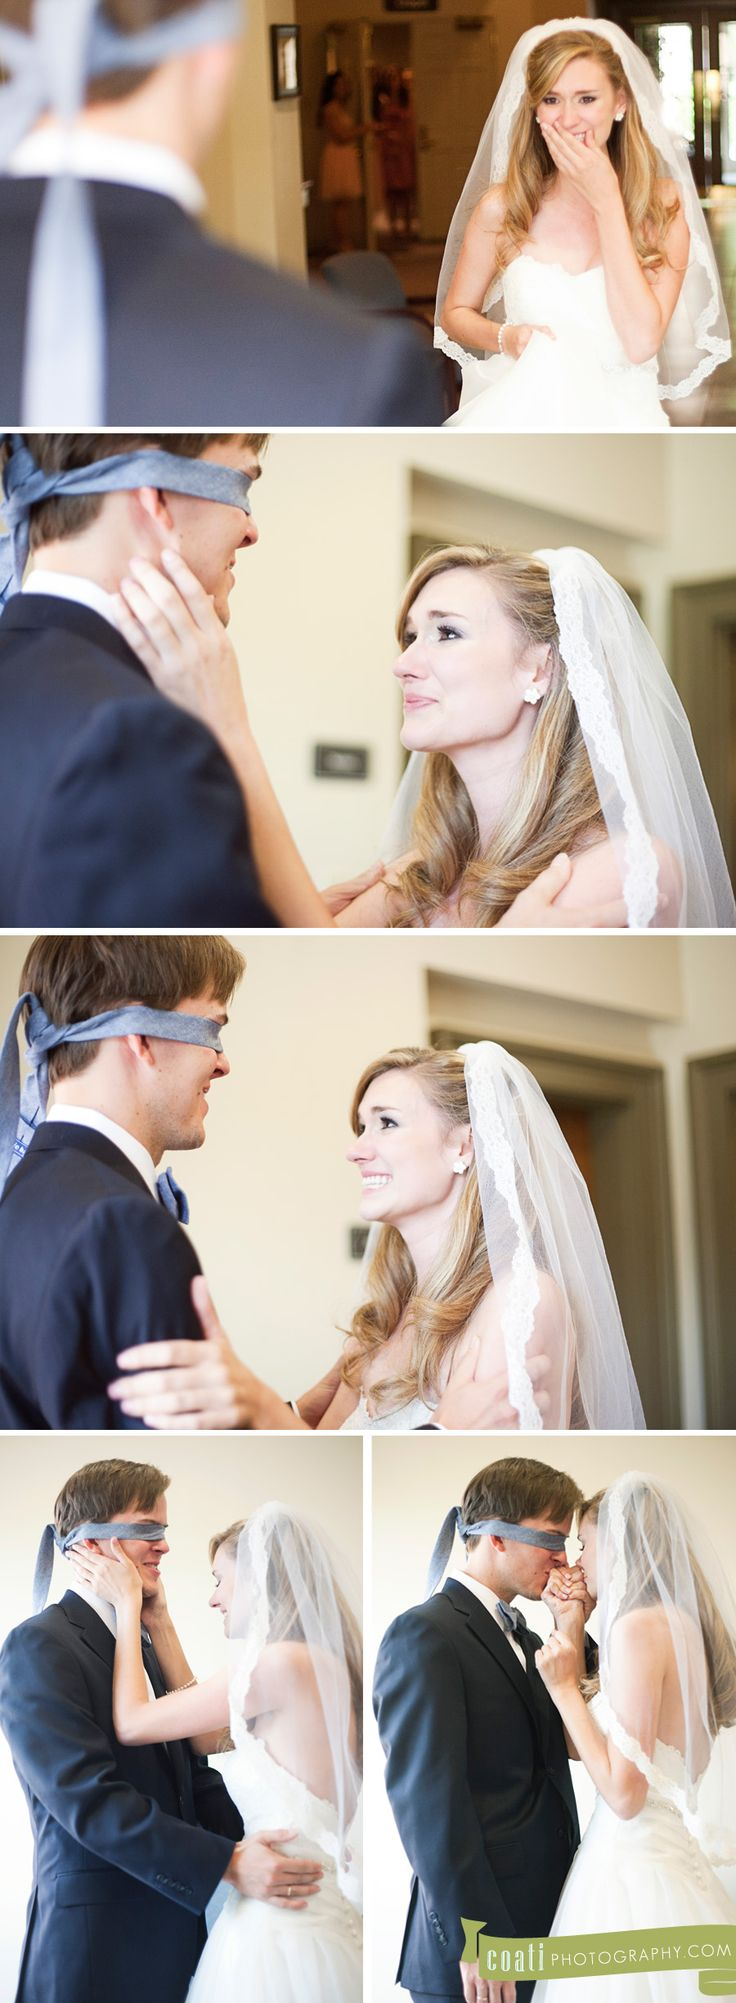 "See the groom without breaking the ""groom shouldn't see the bride before the wedding"" rule! - these pictures are ADORABLE!"